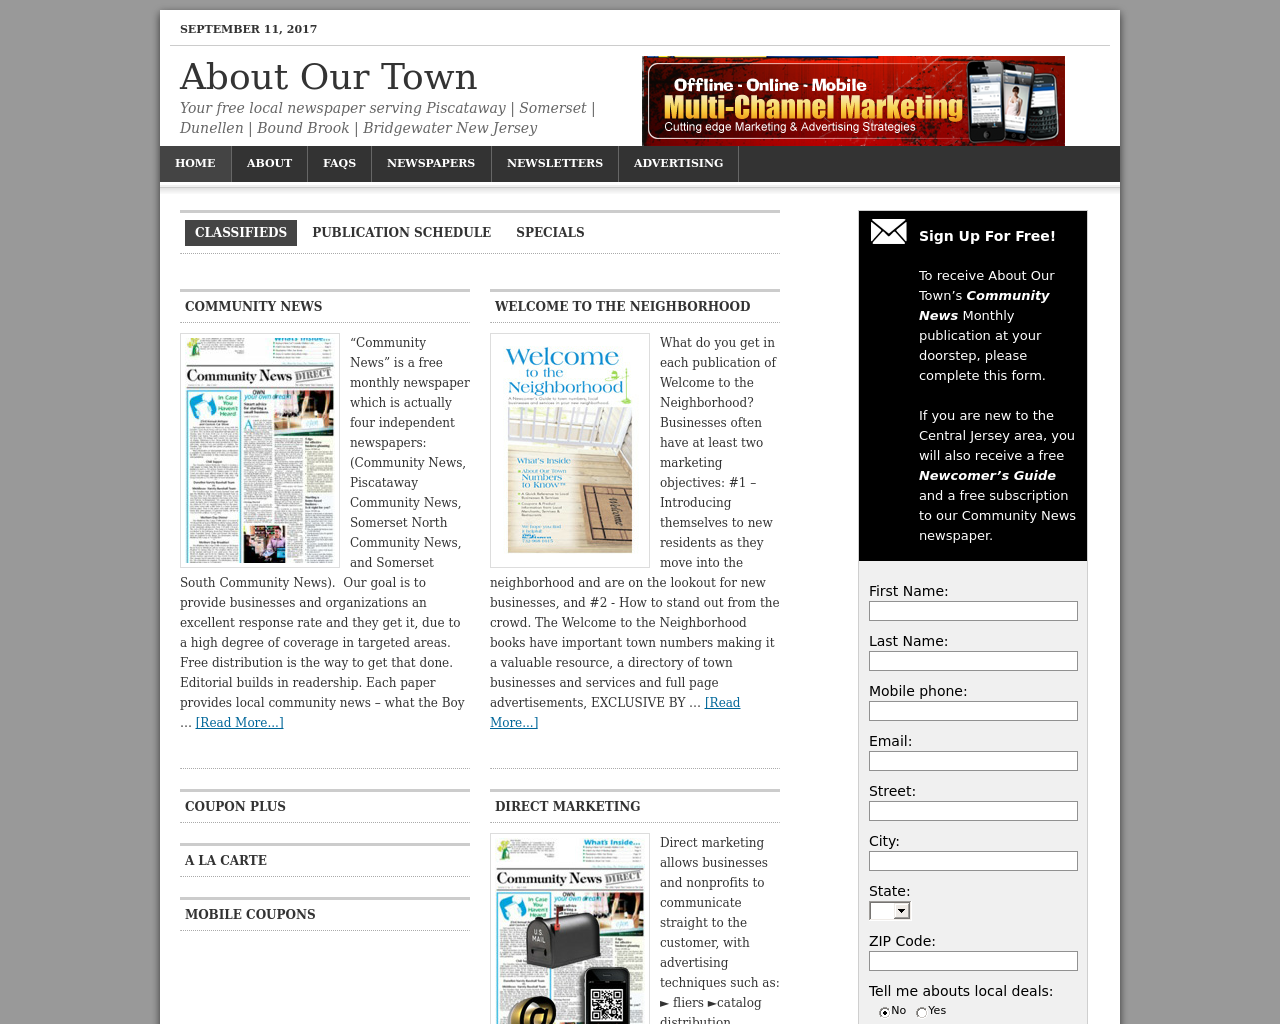 About Our Town Advertising Mediakits, Reviews, Pricing